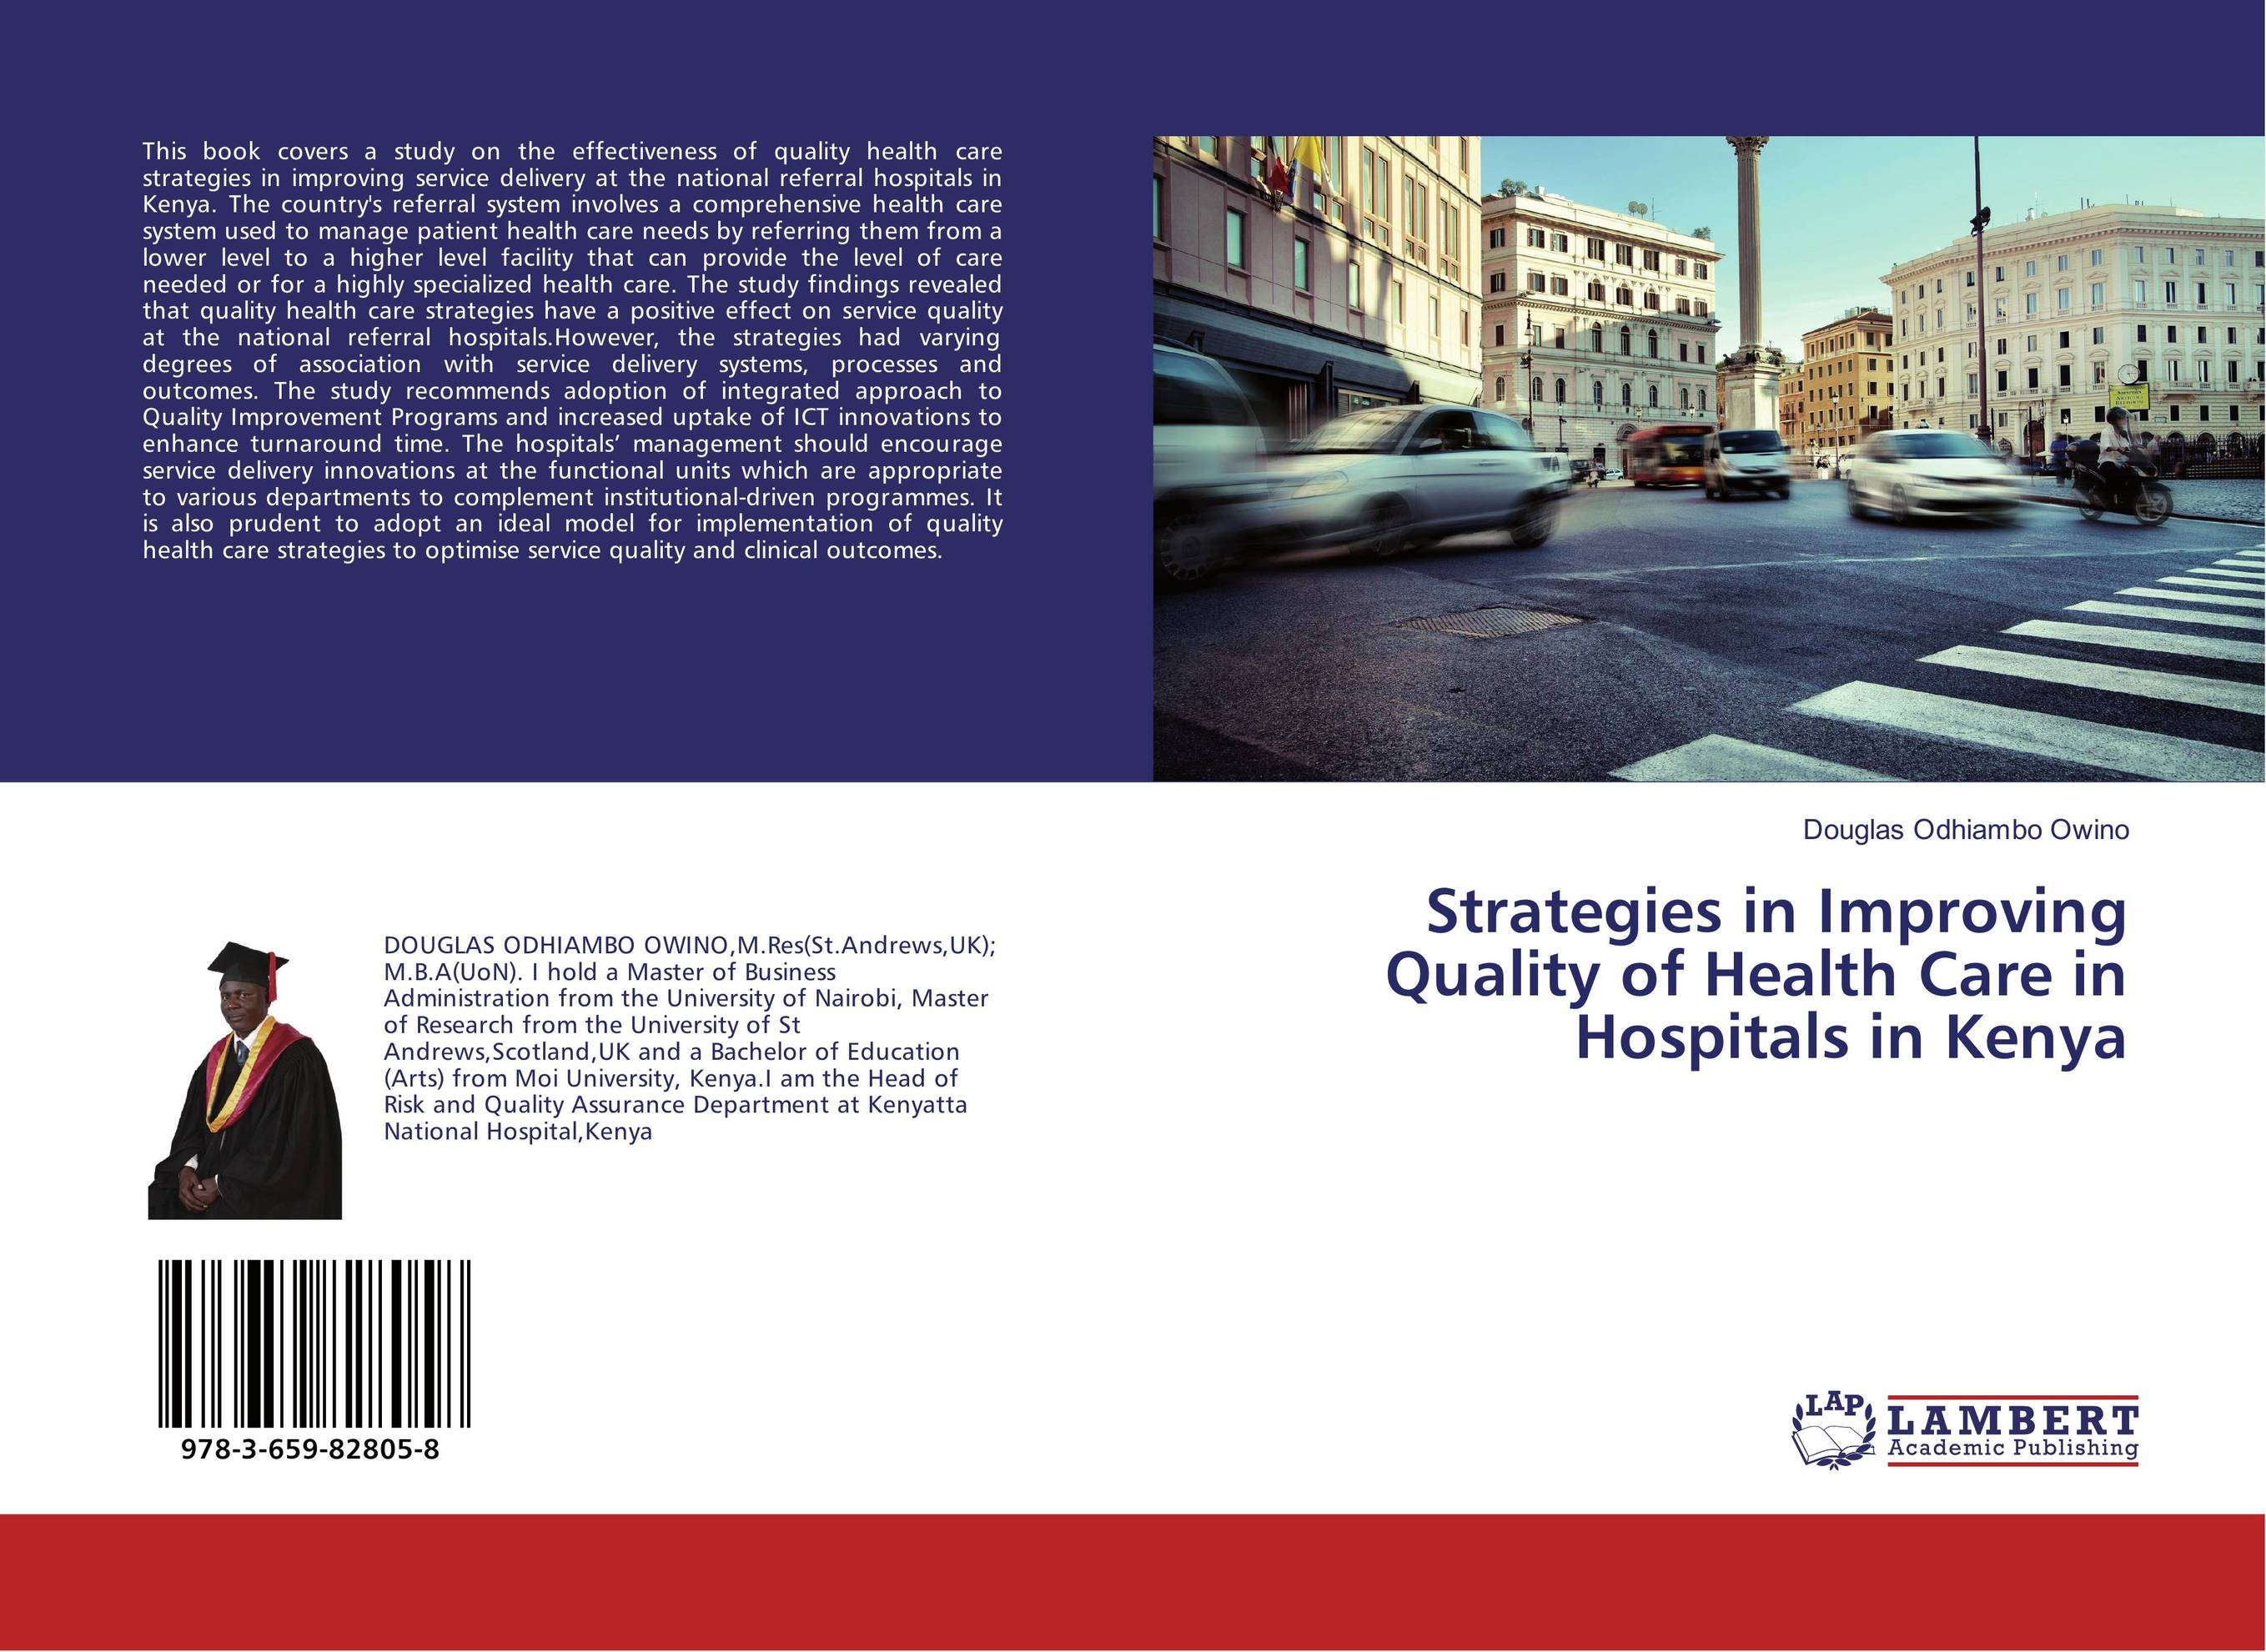 Strategies in Improving Quality of Health Care in Hospitals in Kenya купить